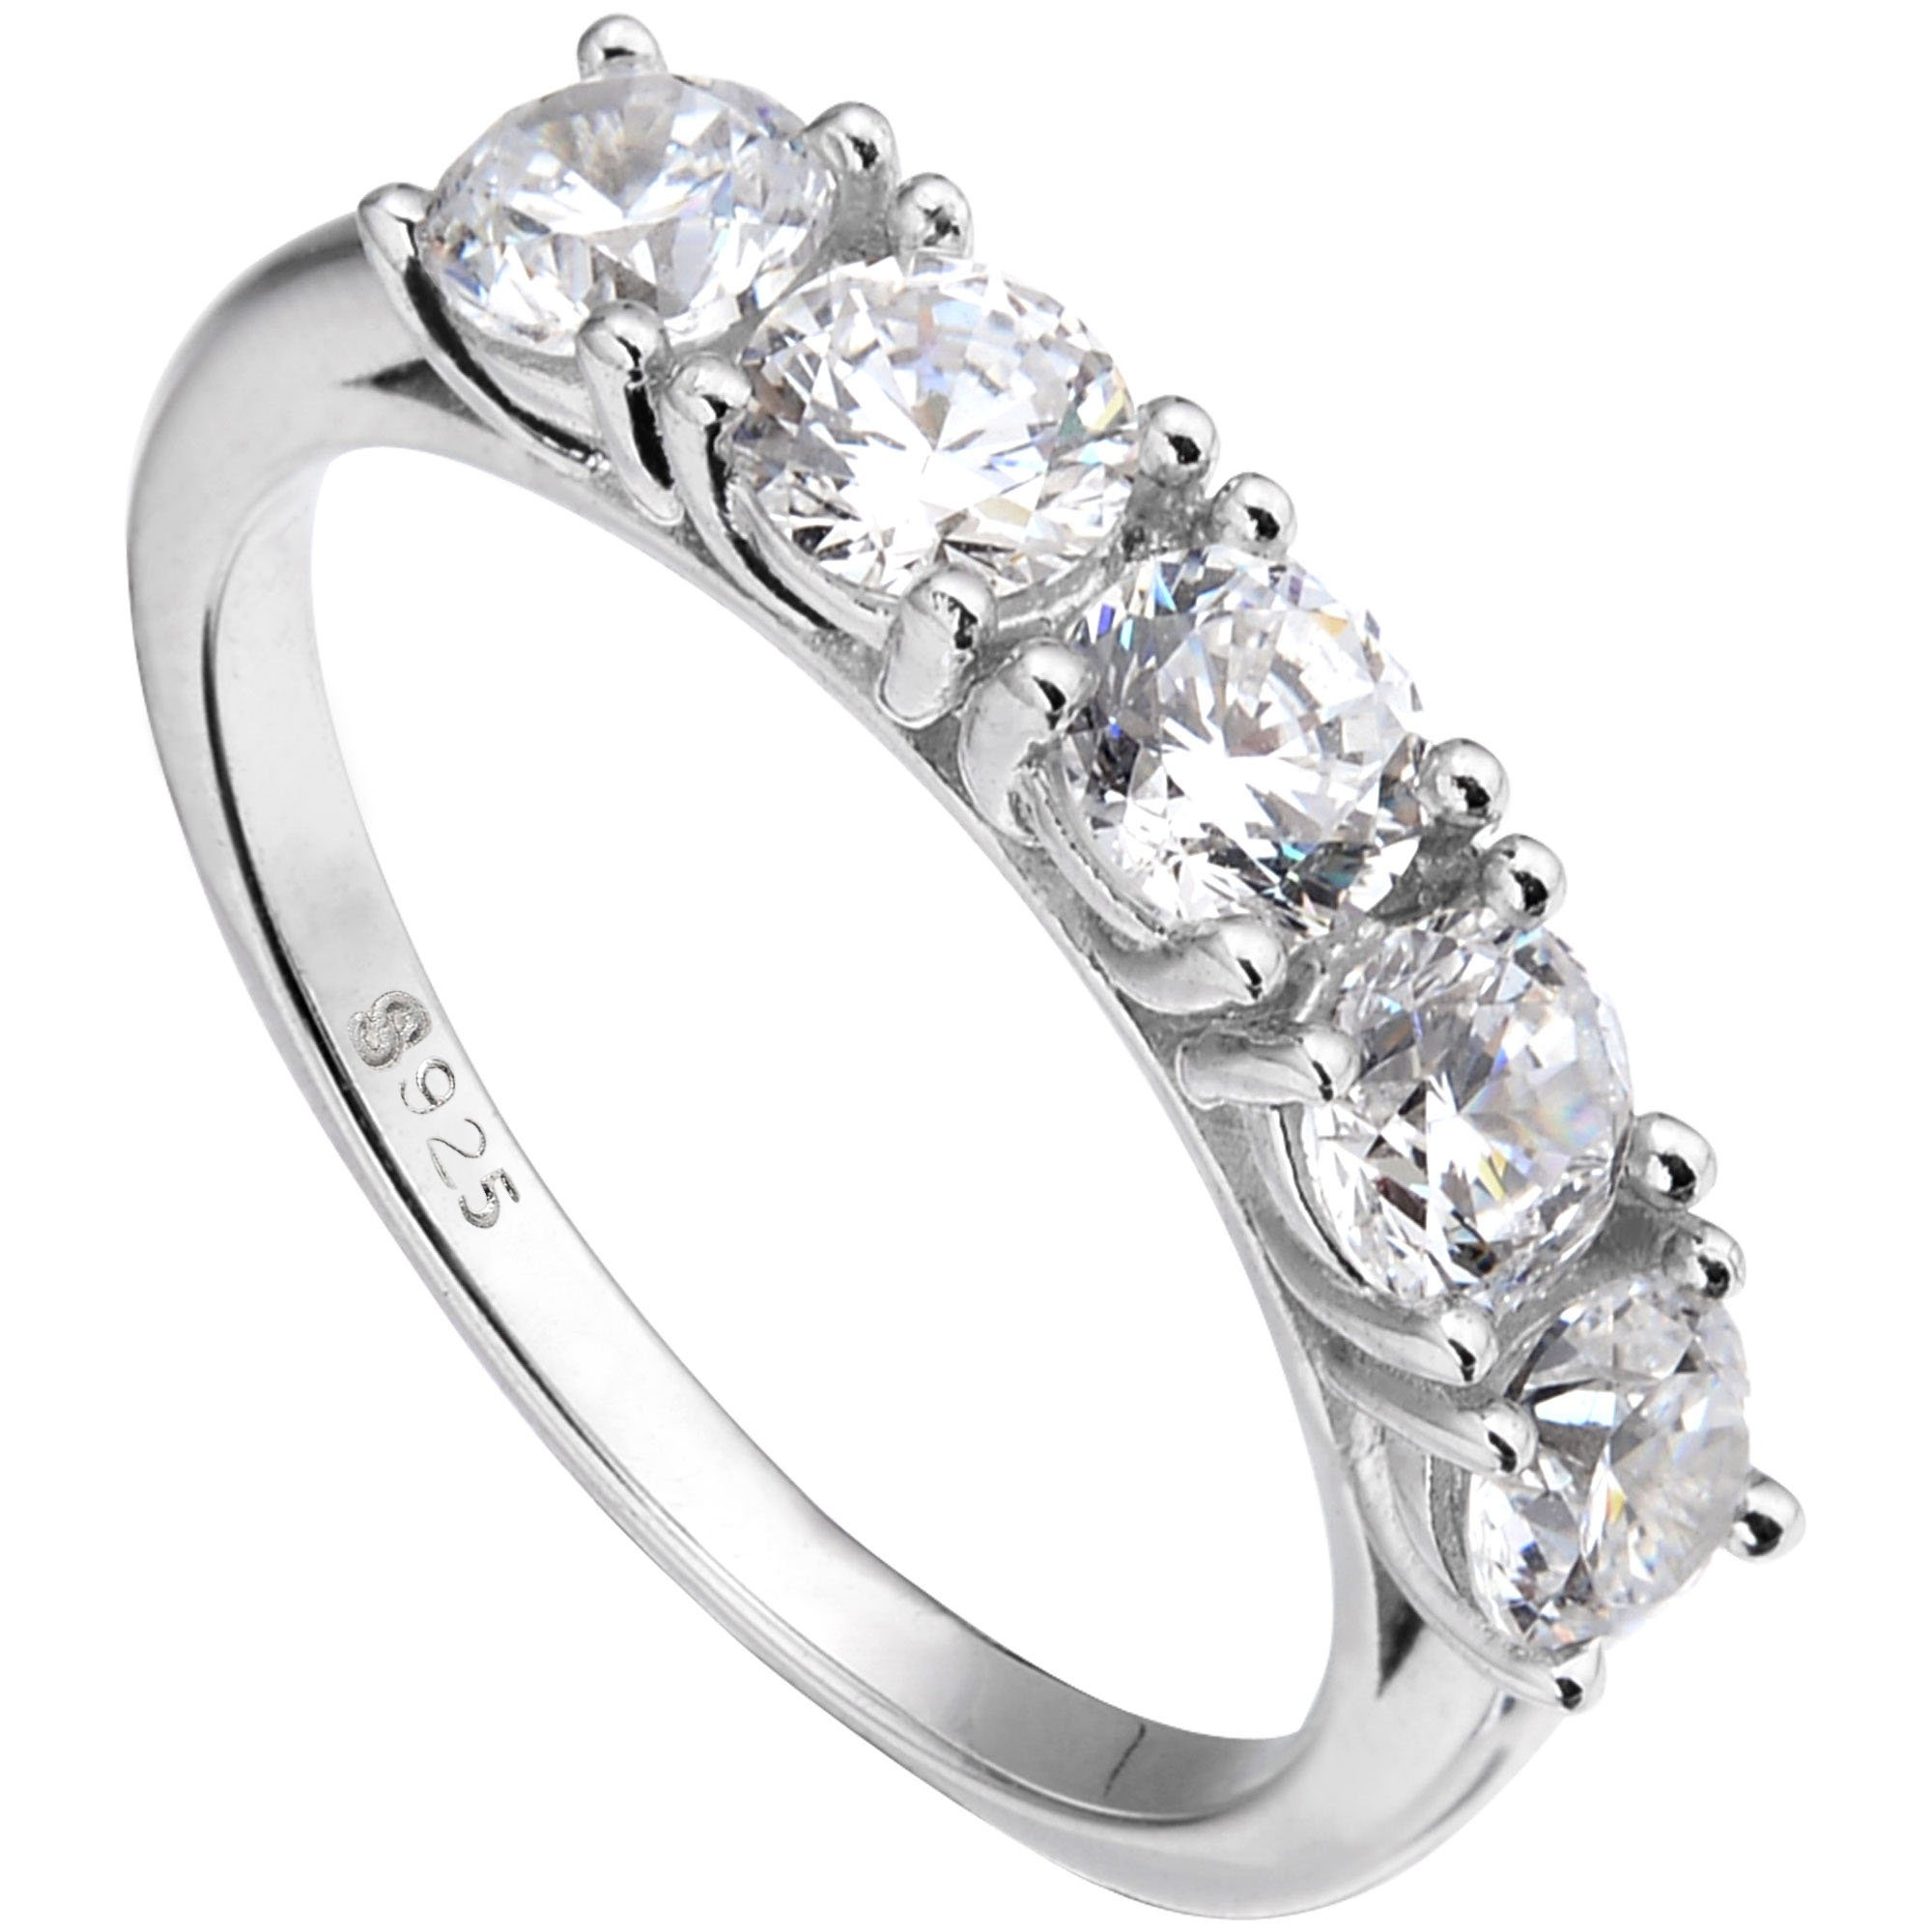 EVER FAITH 925 Sterling Silver Prong Round CZ Half Eternity Engagement Bride Ring Clear - Size 7